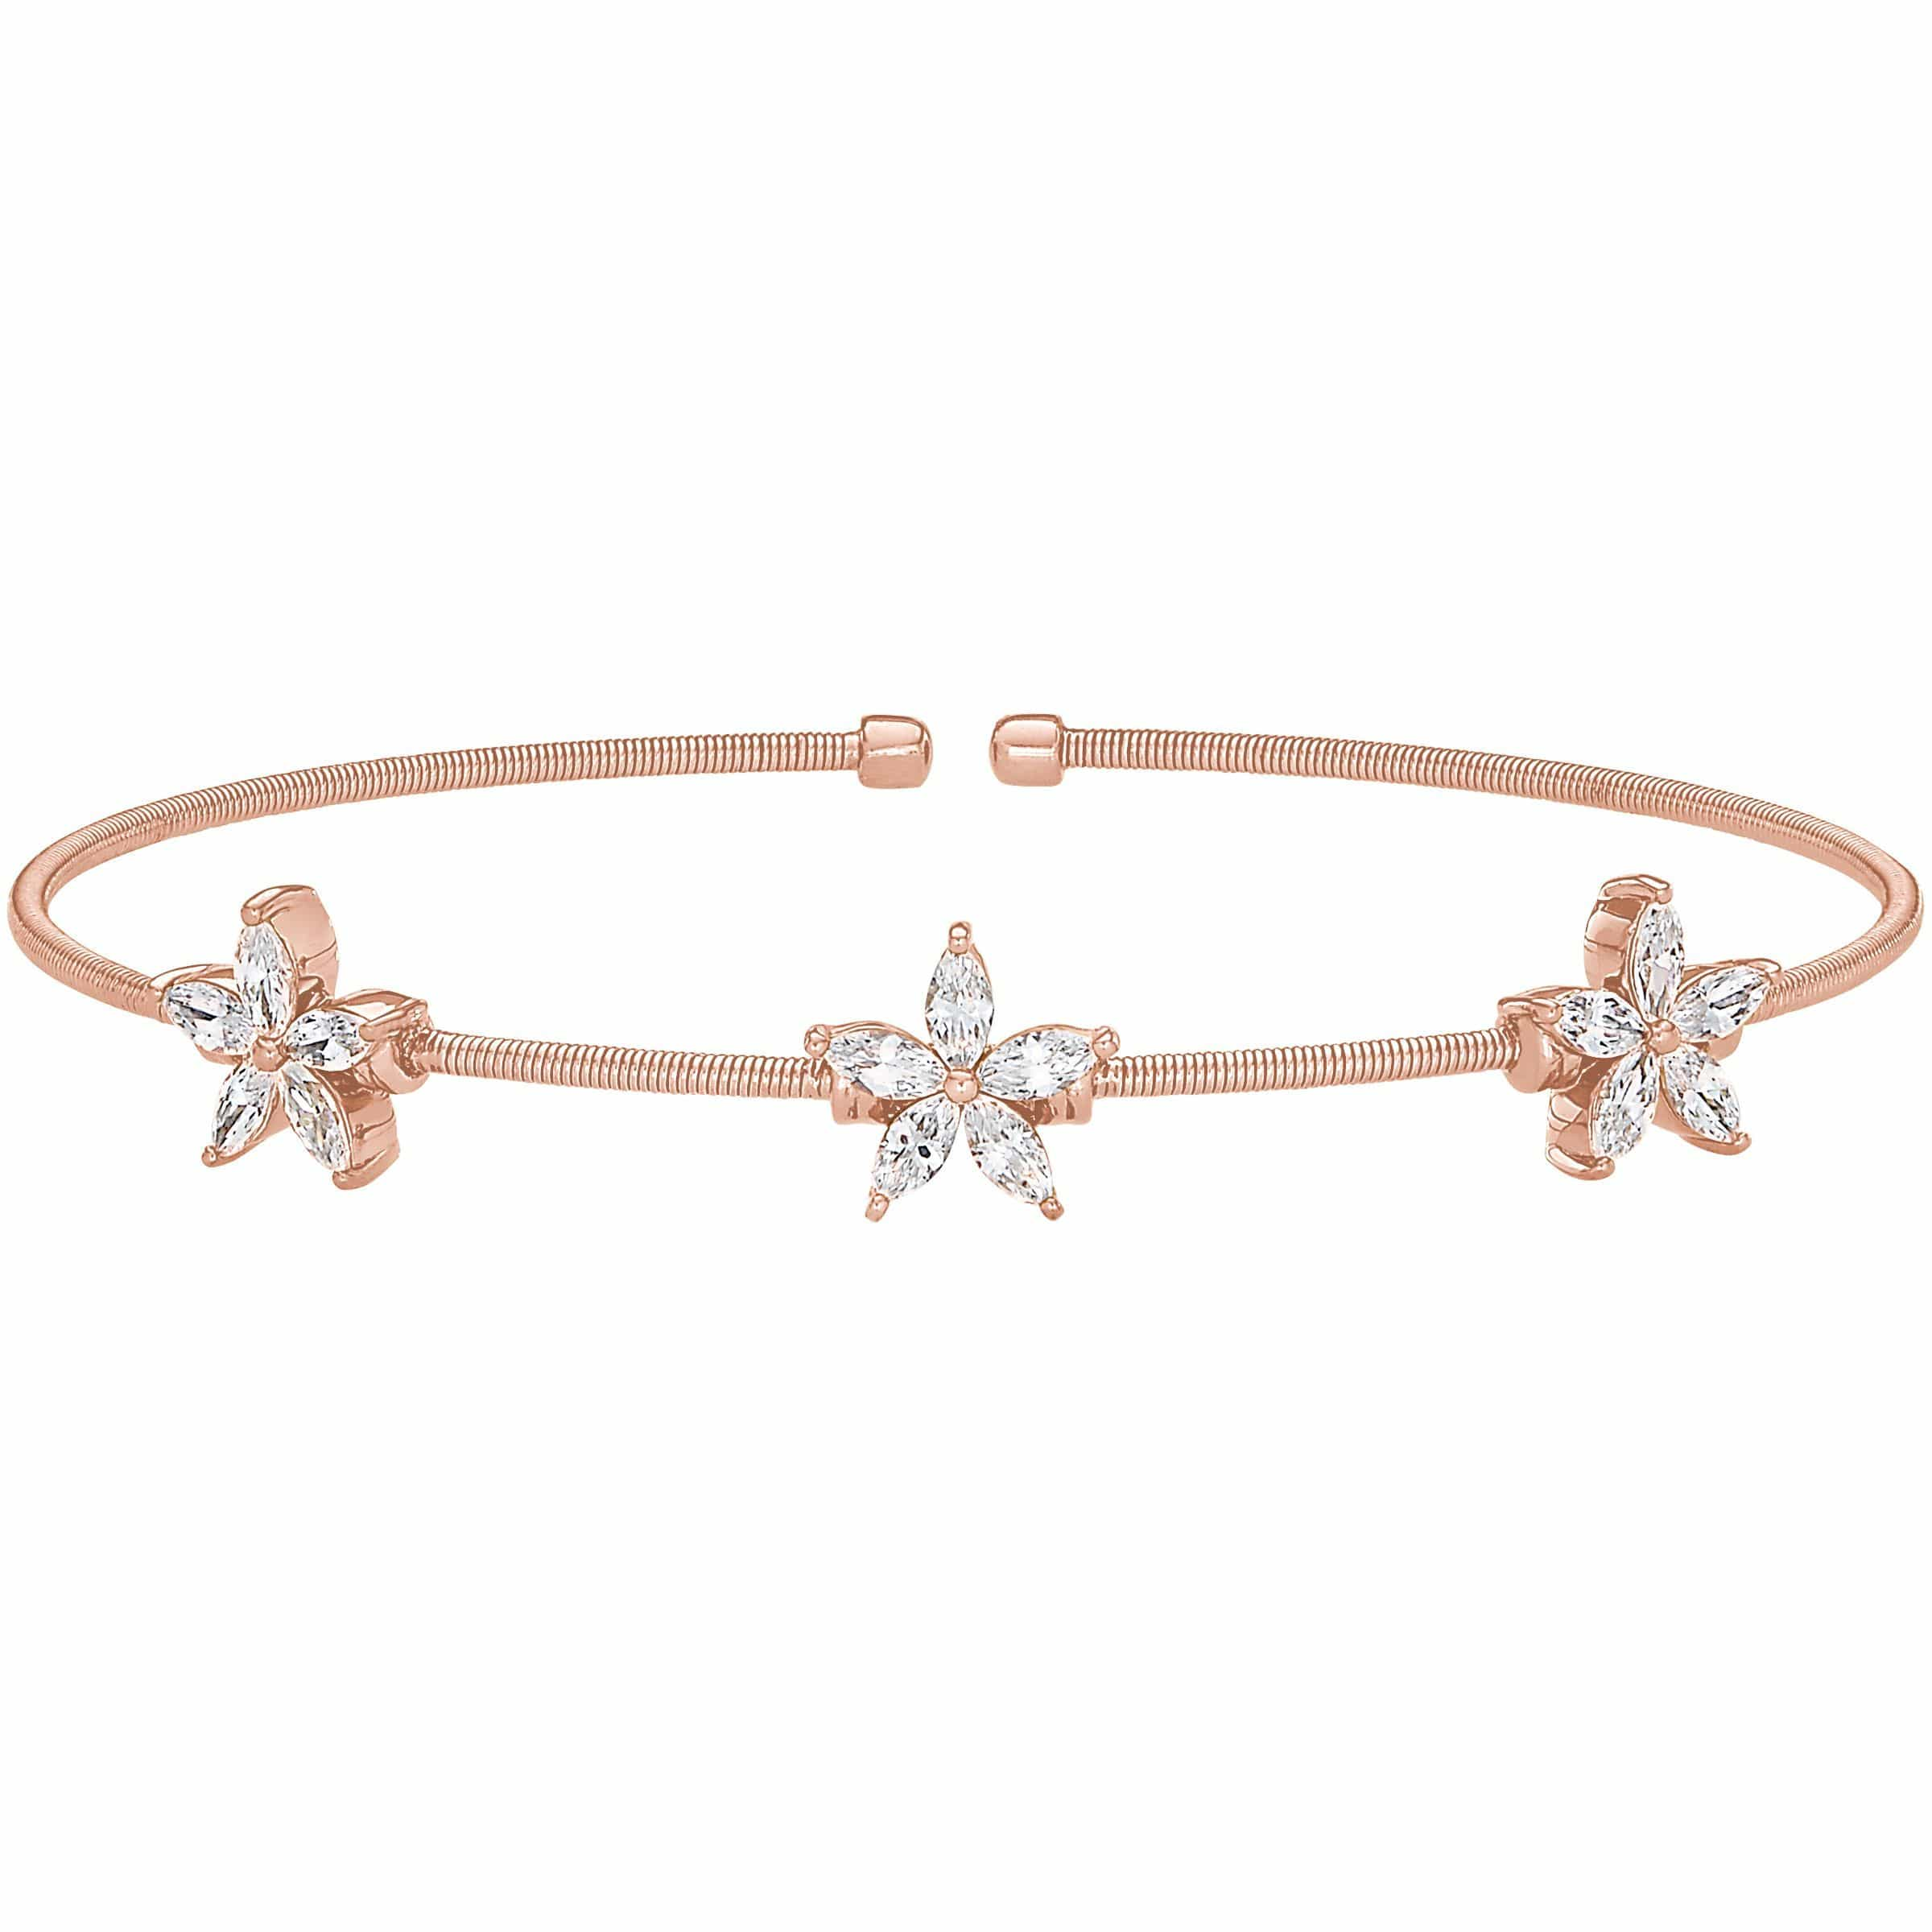 Rose Gold Finish Sterling Silver Cable Cuff Bracelet - LL7068B-RG-Kelly Waters-Renee Taylor Gallery